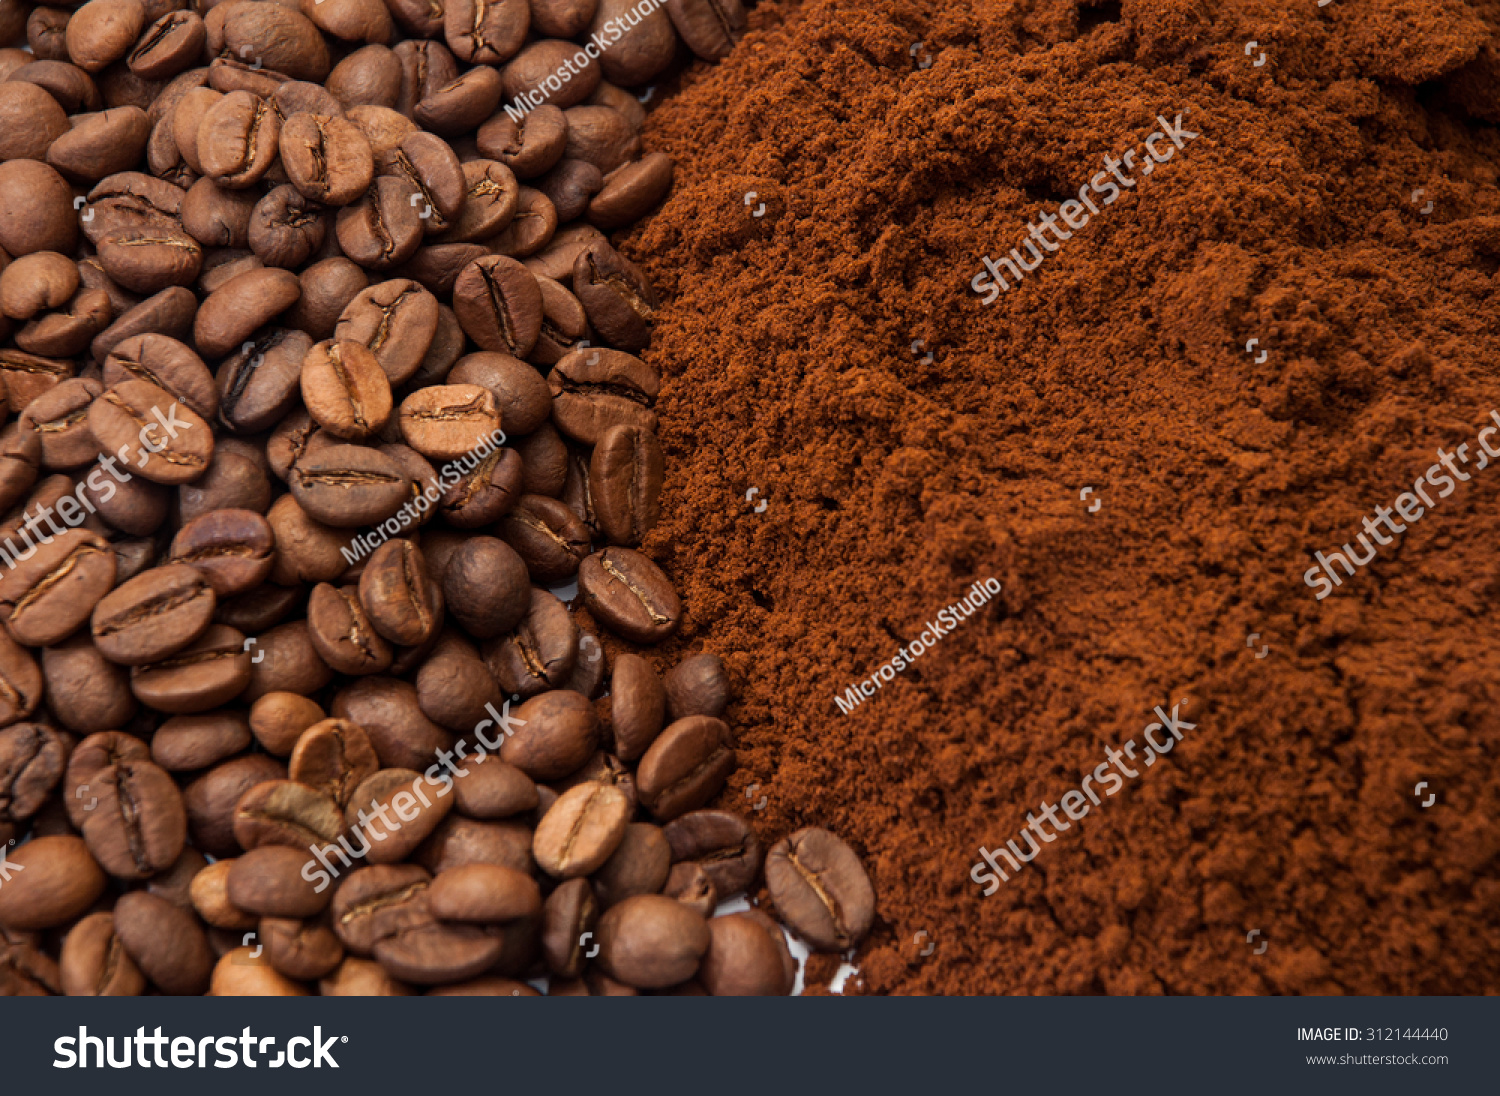 ground coffee stock photo - photo #18